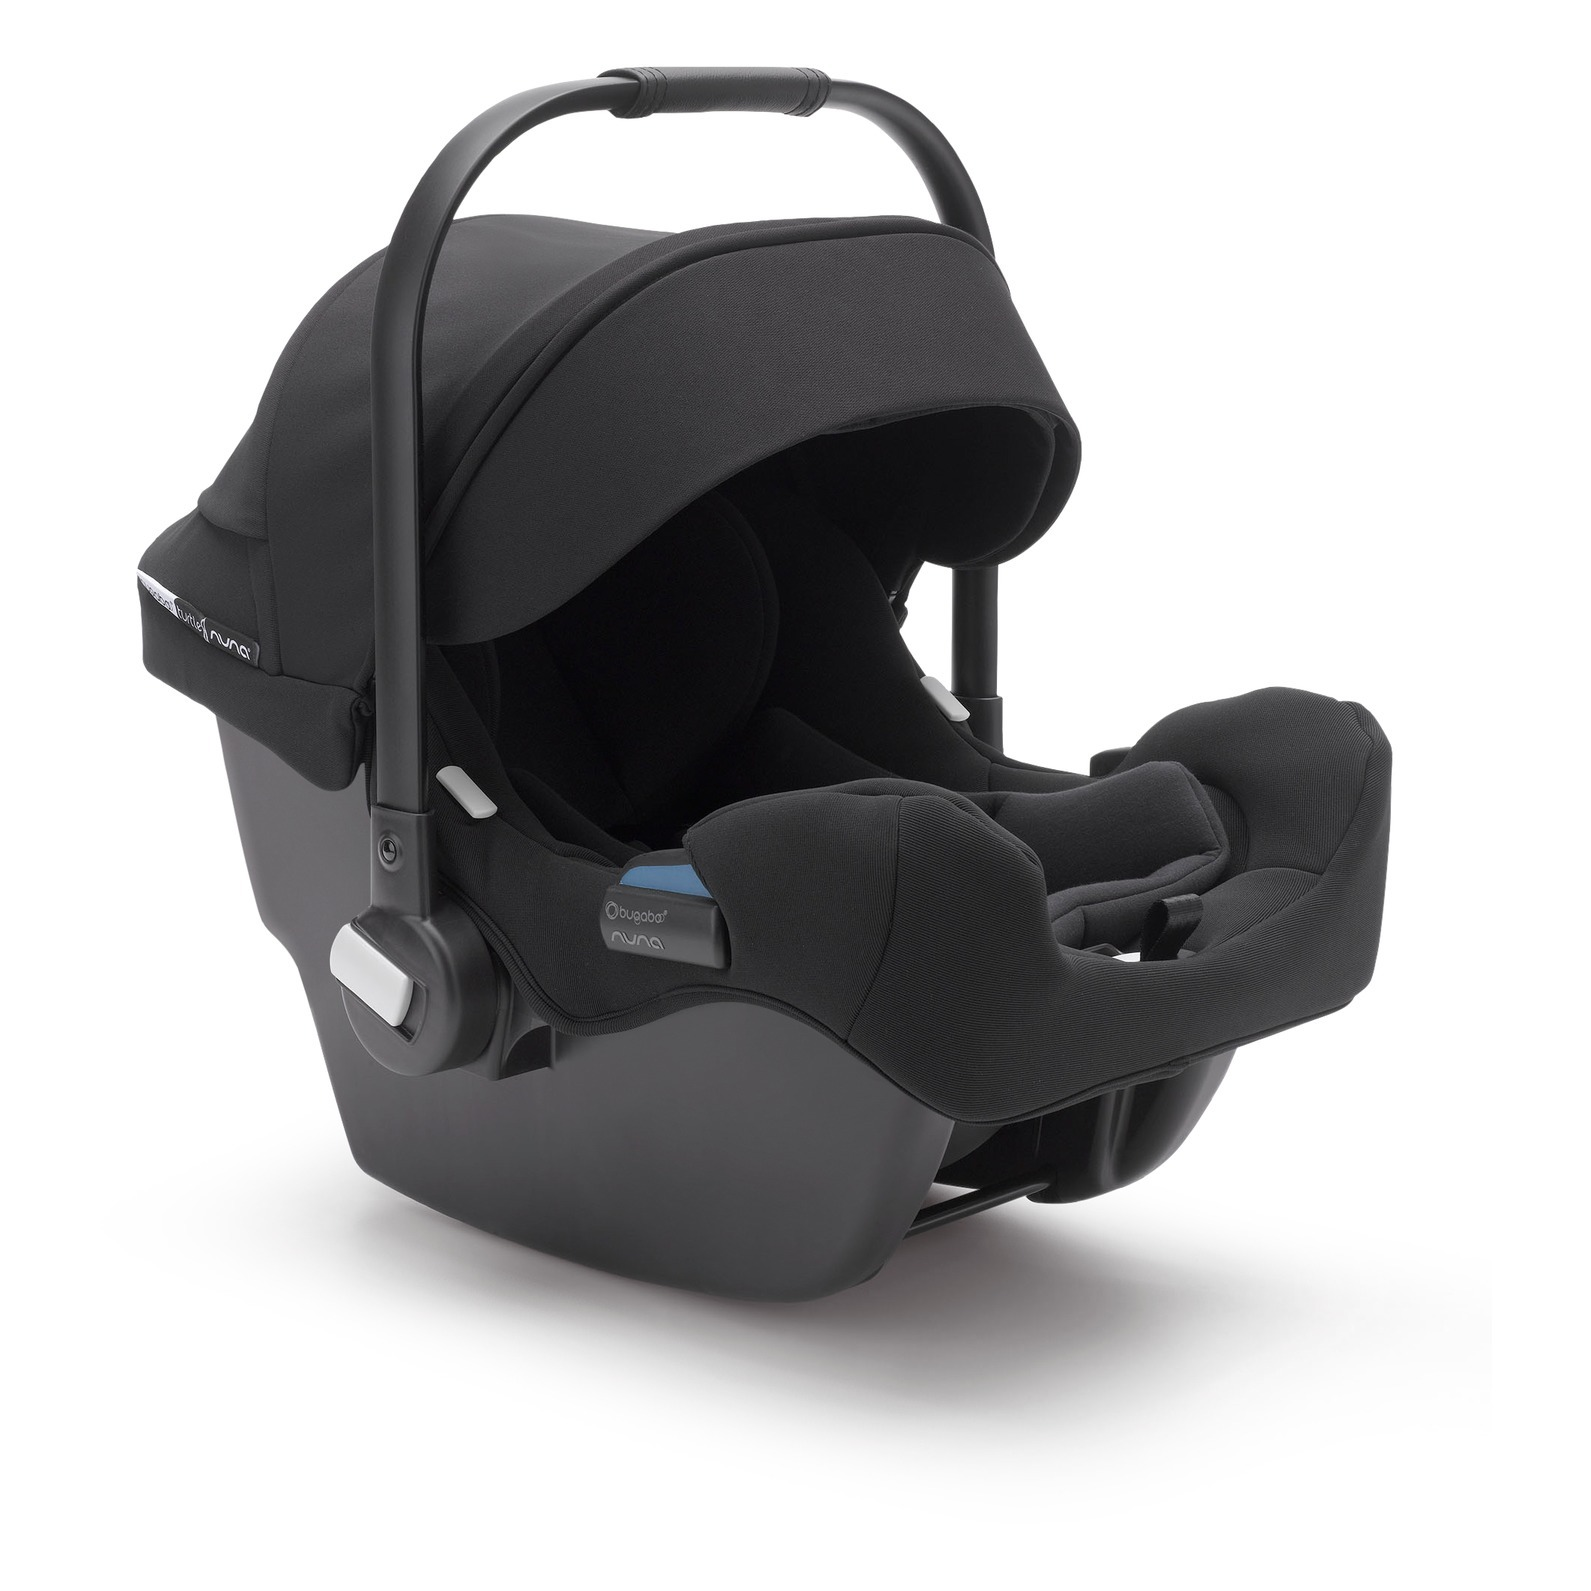 Bugaboo Cameleon 3 Maximum Weight Bugaboo Turtle Car Seat By Nuna For Cameleon Stroller Black